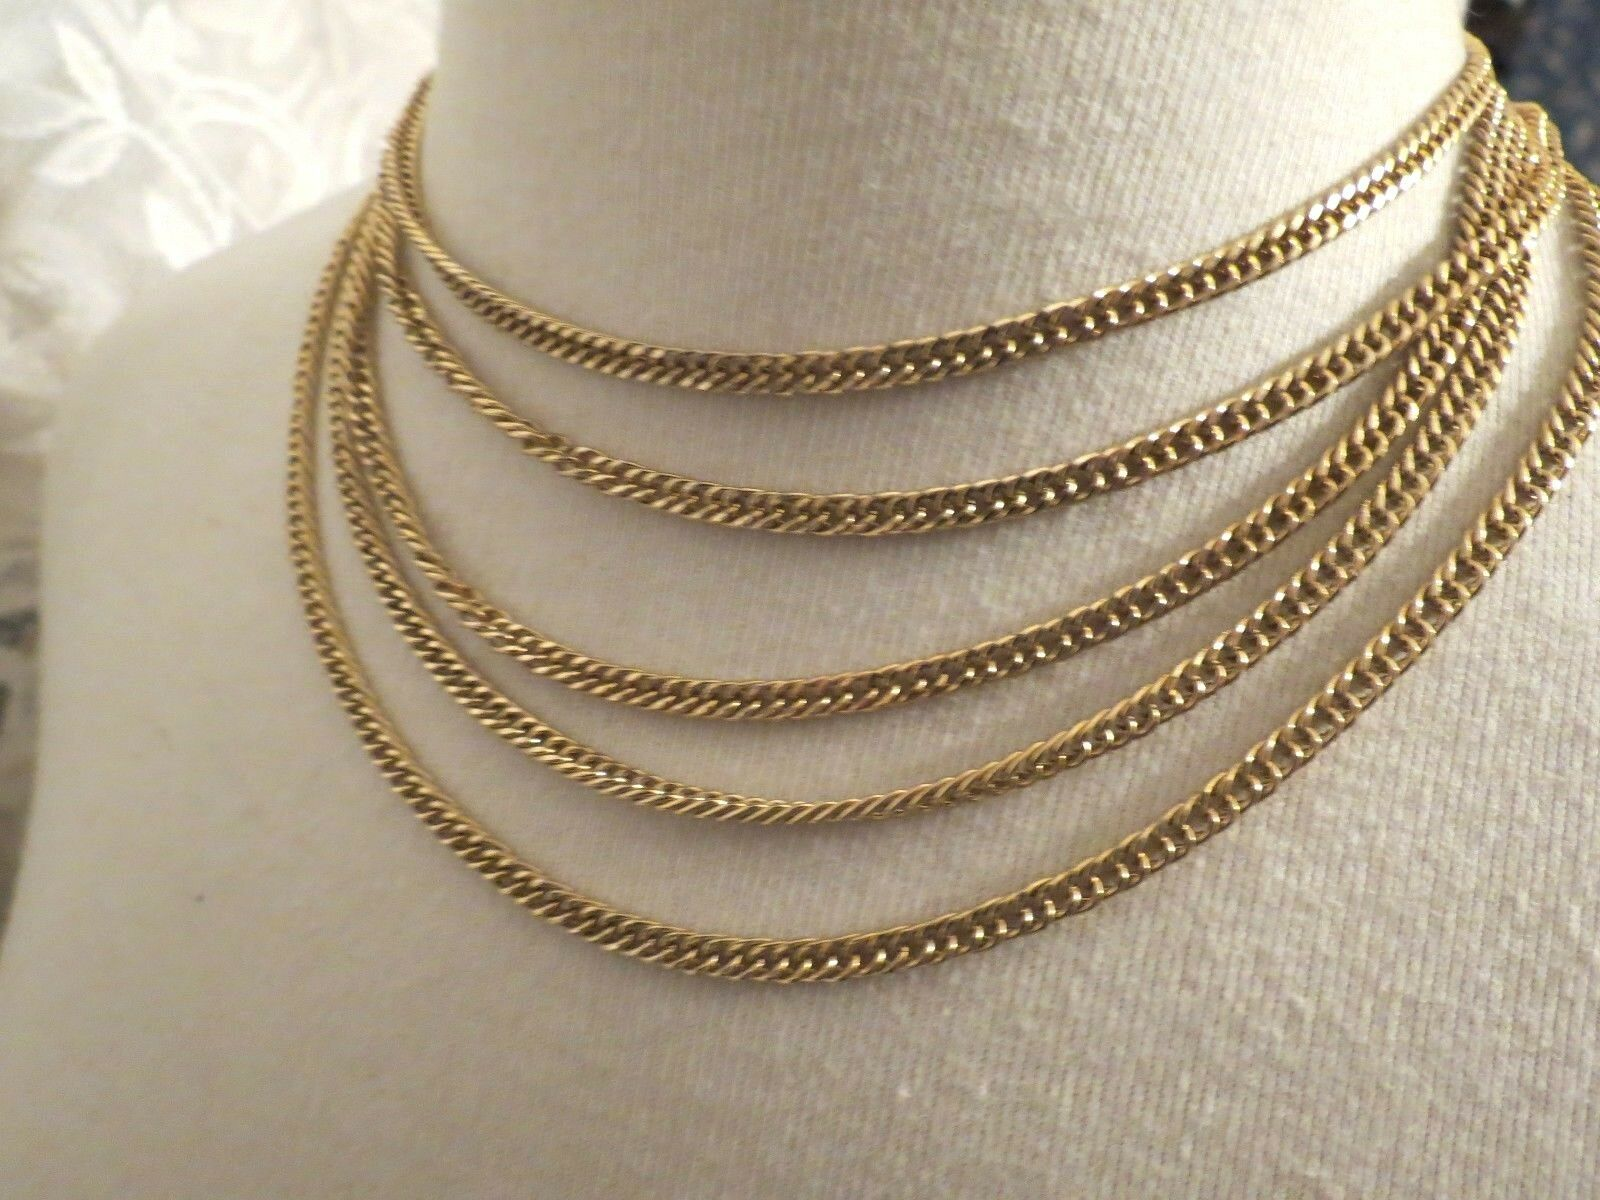 VTG Couture Trifari Necklace Mult Chain Gold Plated Designer Fancy Leaf Catch image 6